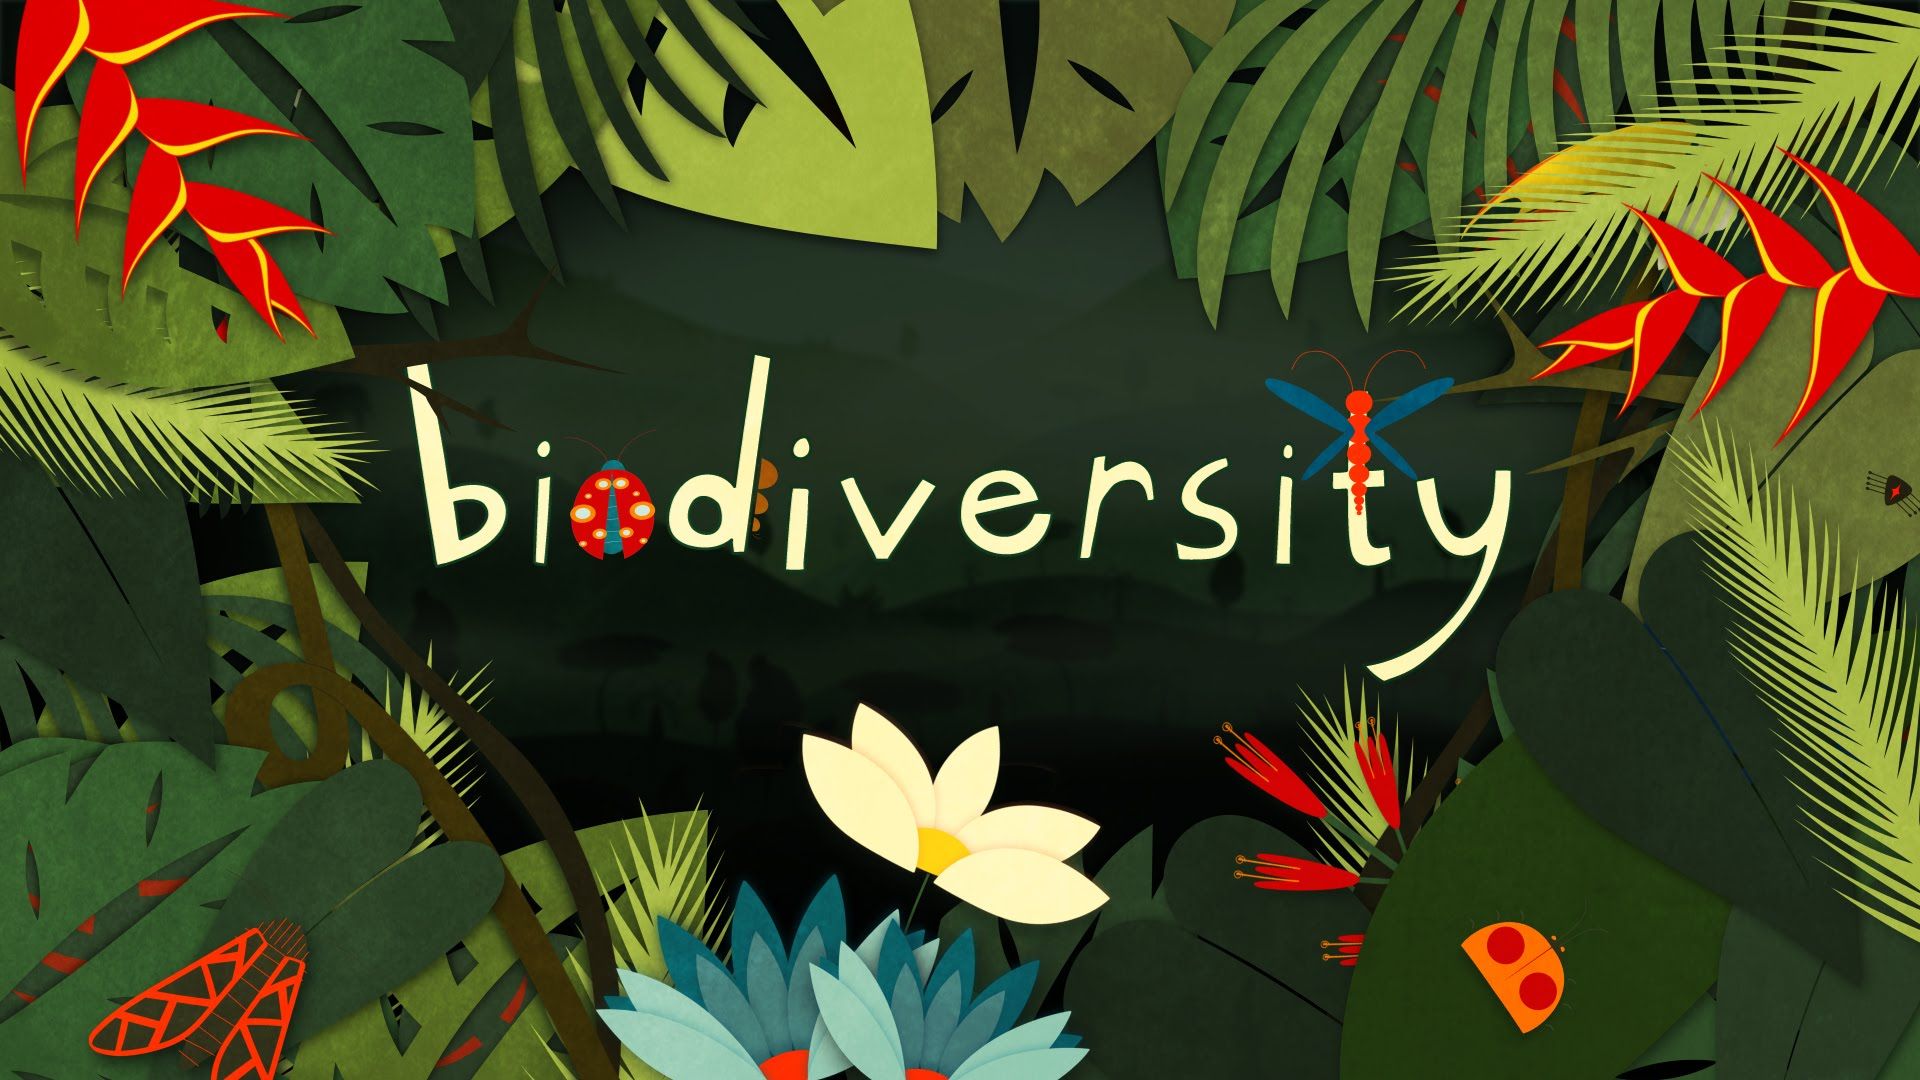 image relating to Biodiversity Printable Worksheets identified as Why is biodiversity therefore significant? The Child Really should Perspective This